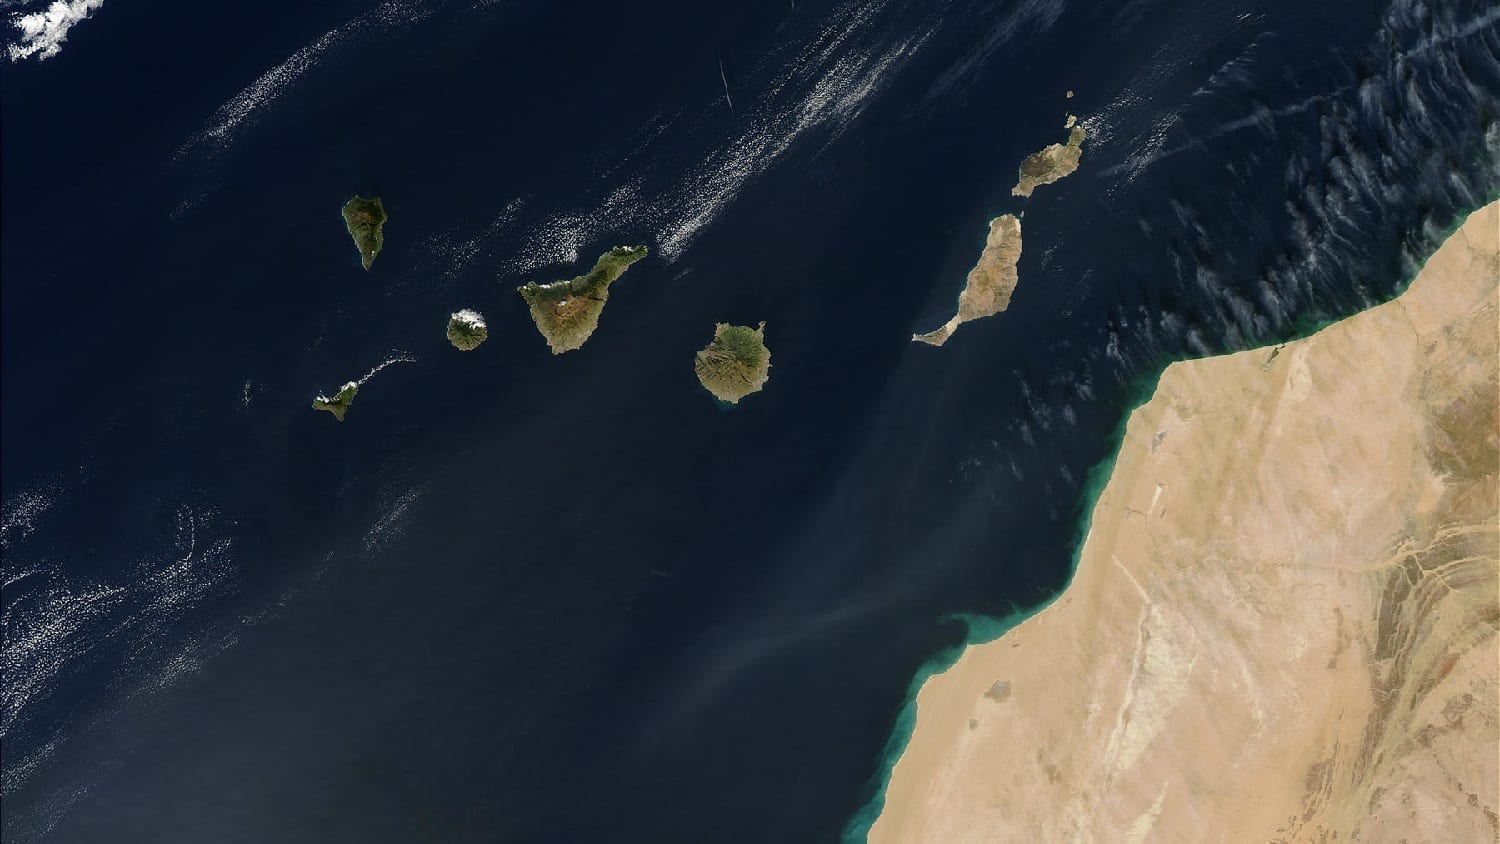 Canary Islands from space, photo credit: NASA